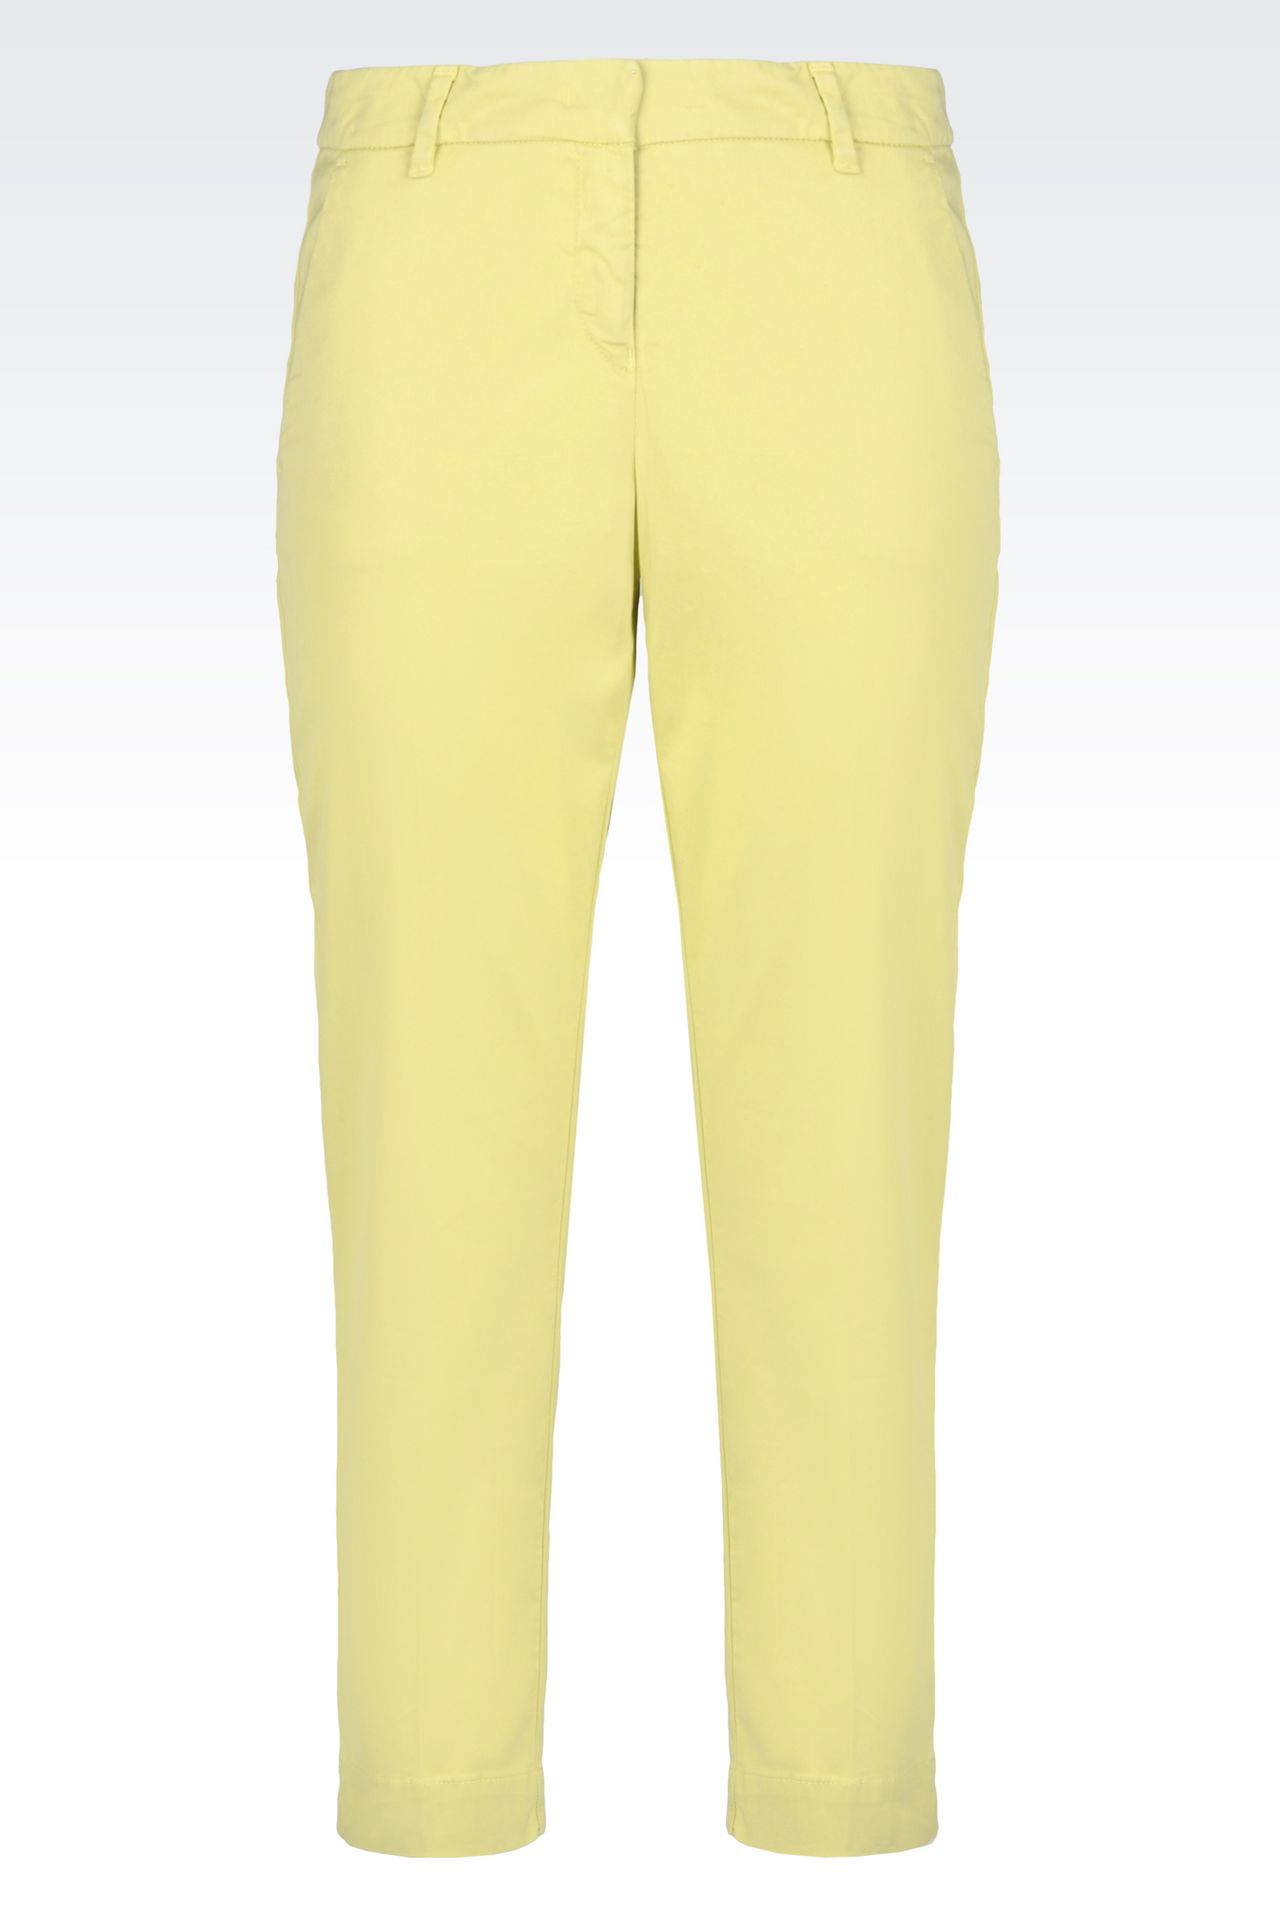 Model Atelier Luxe Cotton Sateen Capri Pants - Pleated Cuffed (For Women) - Save 82%